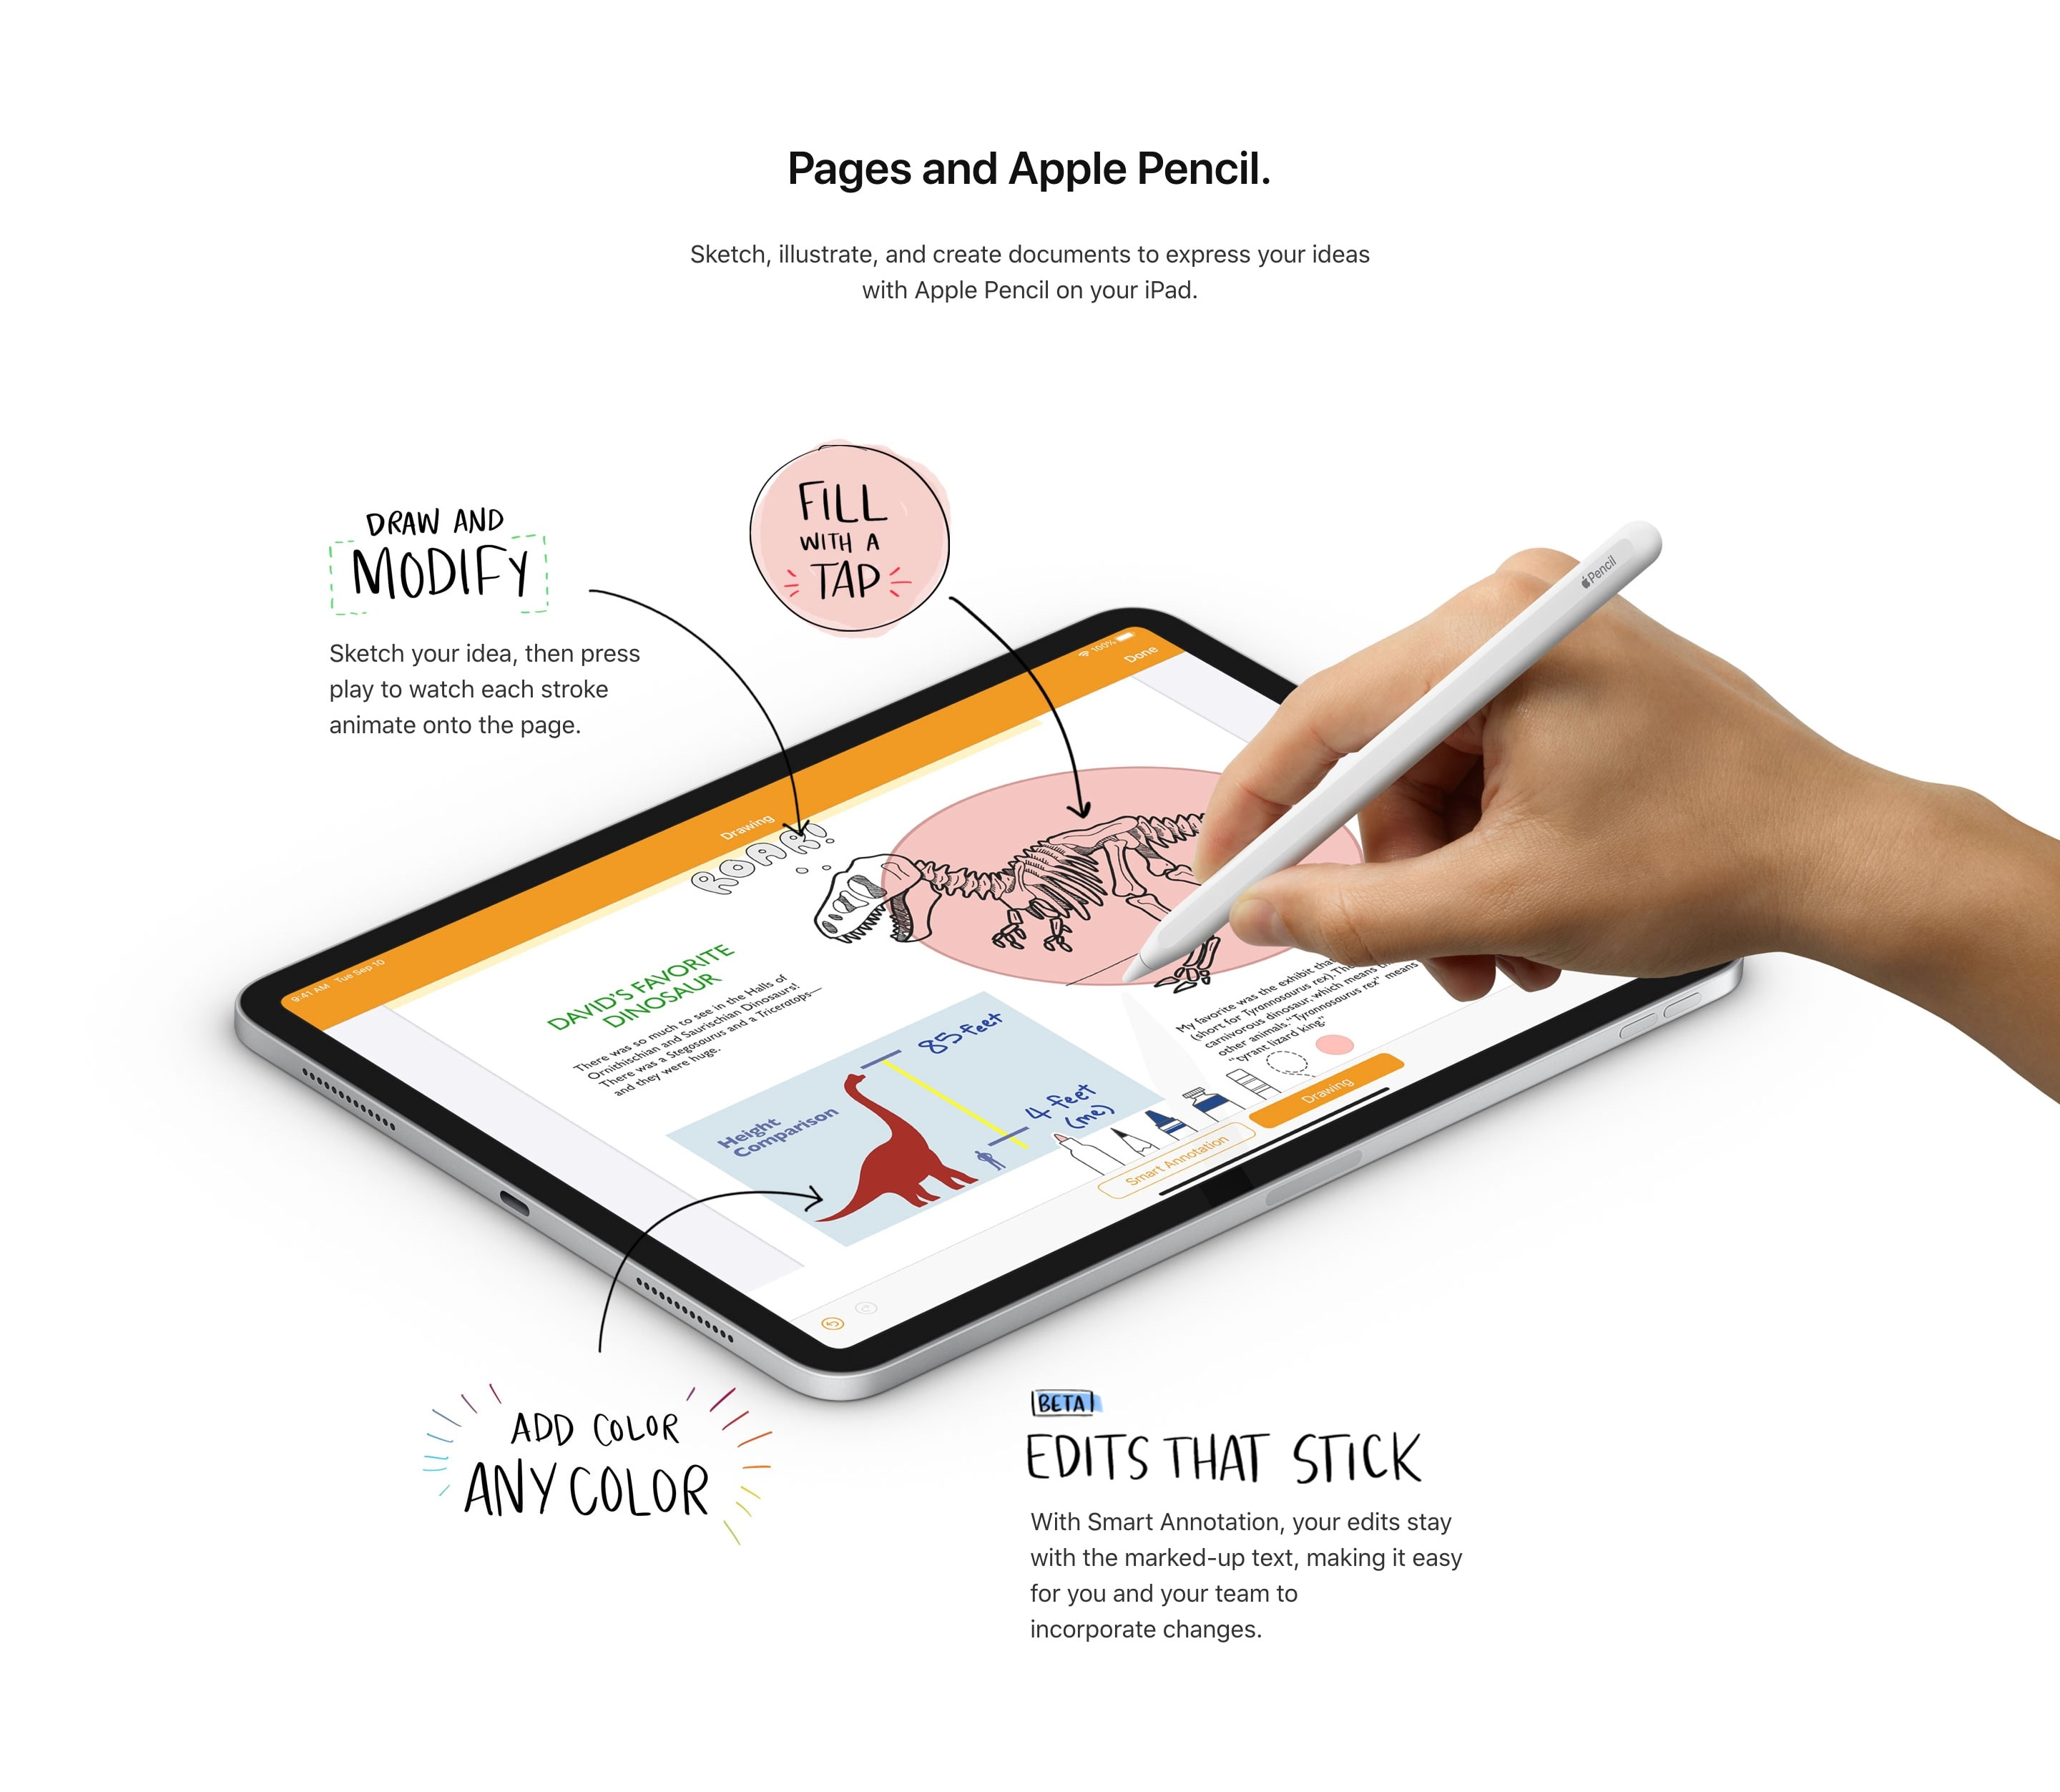 Feature Block with iPad Mockup and Handwritten Labels